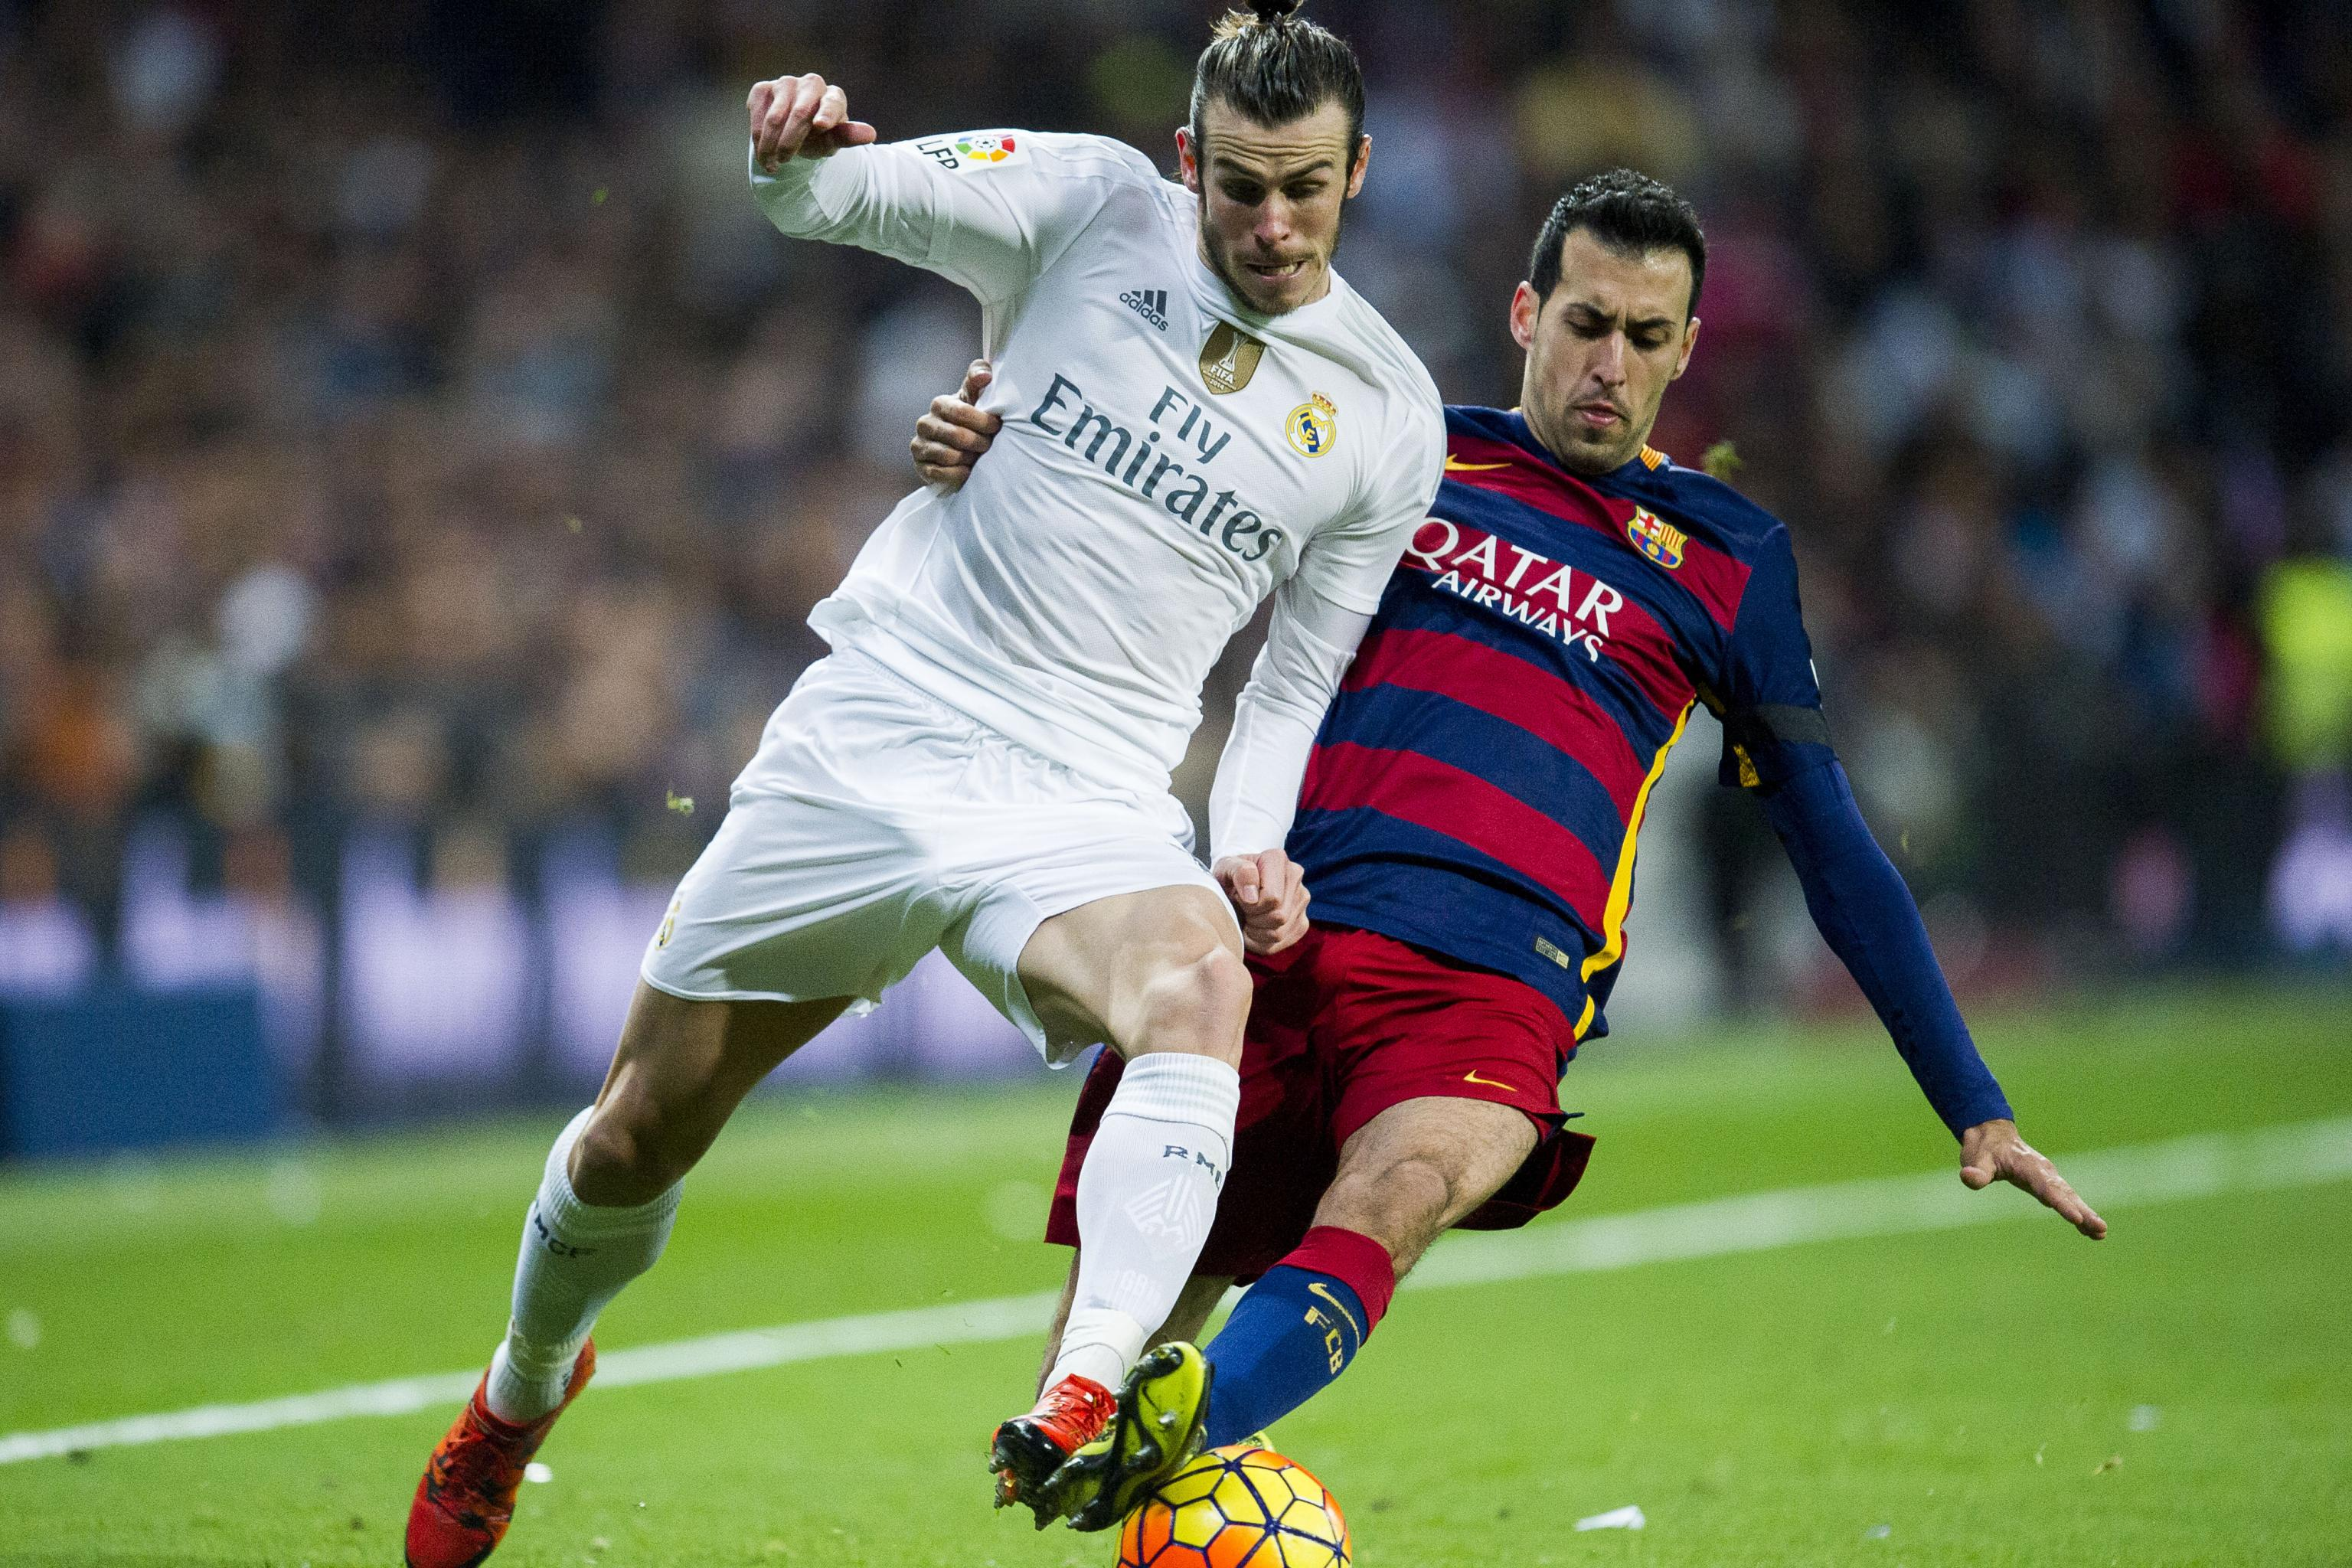 Barcelona Vs Real Madrid Records And Head To Head Ahead Of El Clasico 2016 Bleacher Report Latest News Videos And Highlights